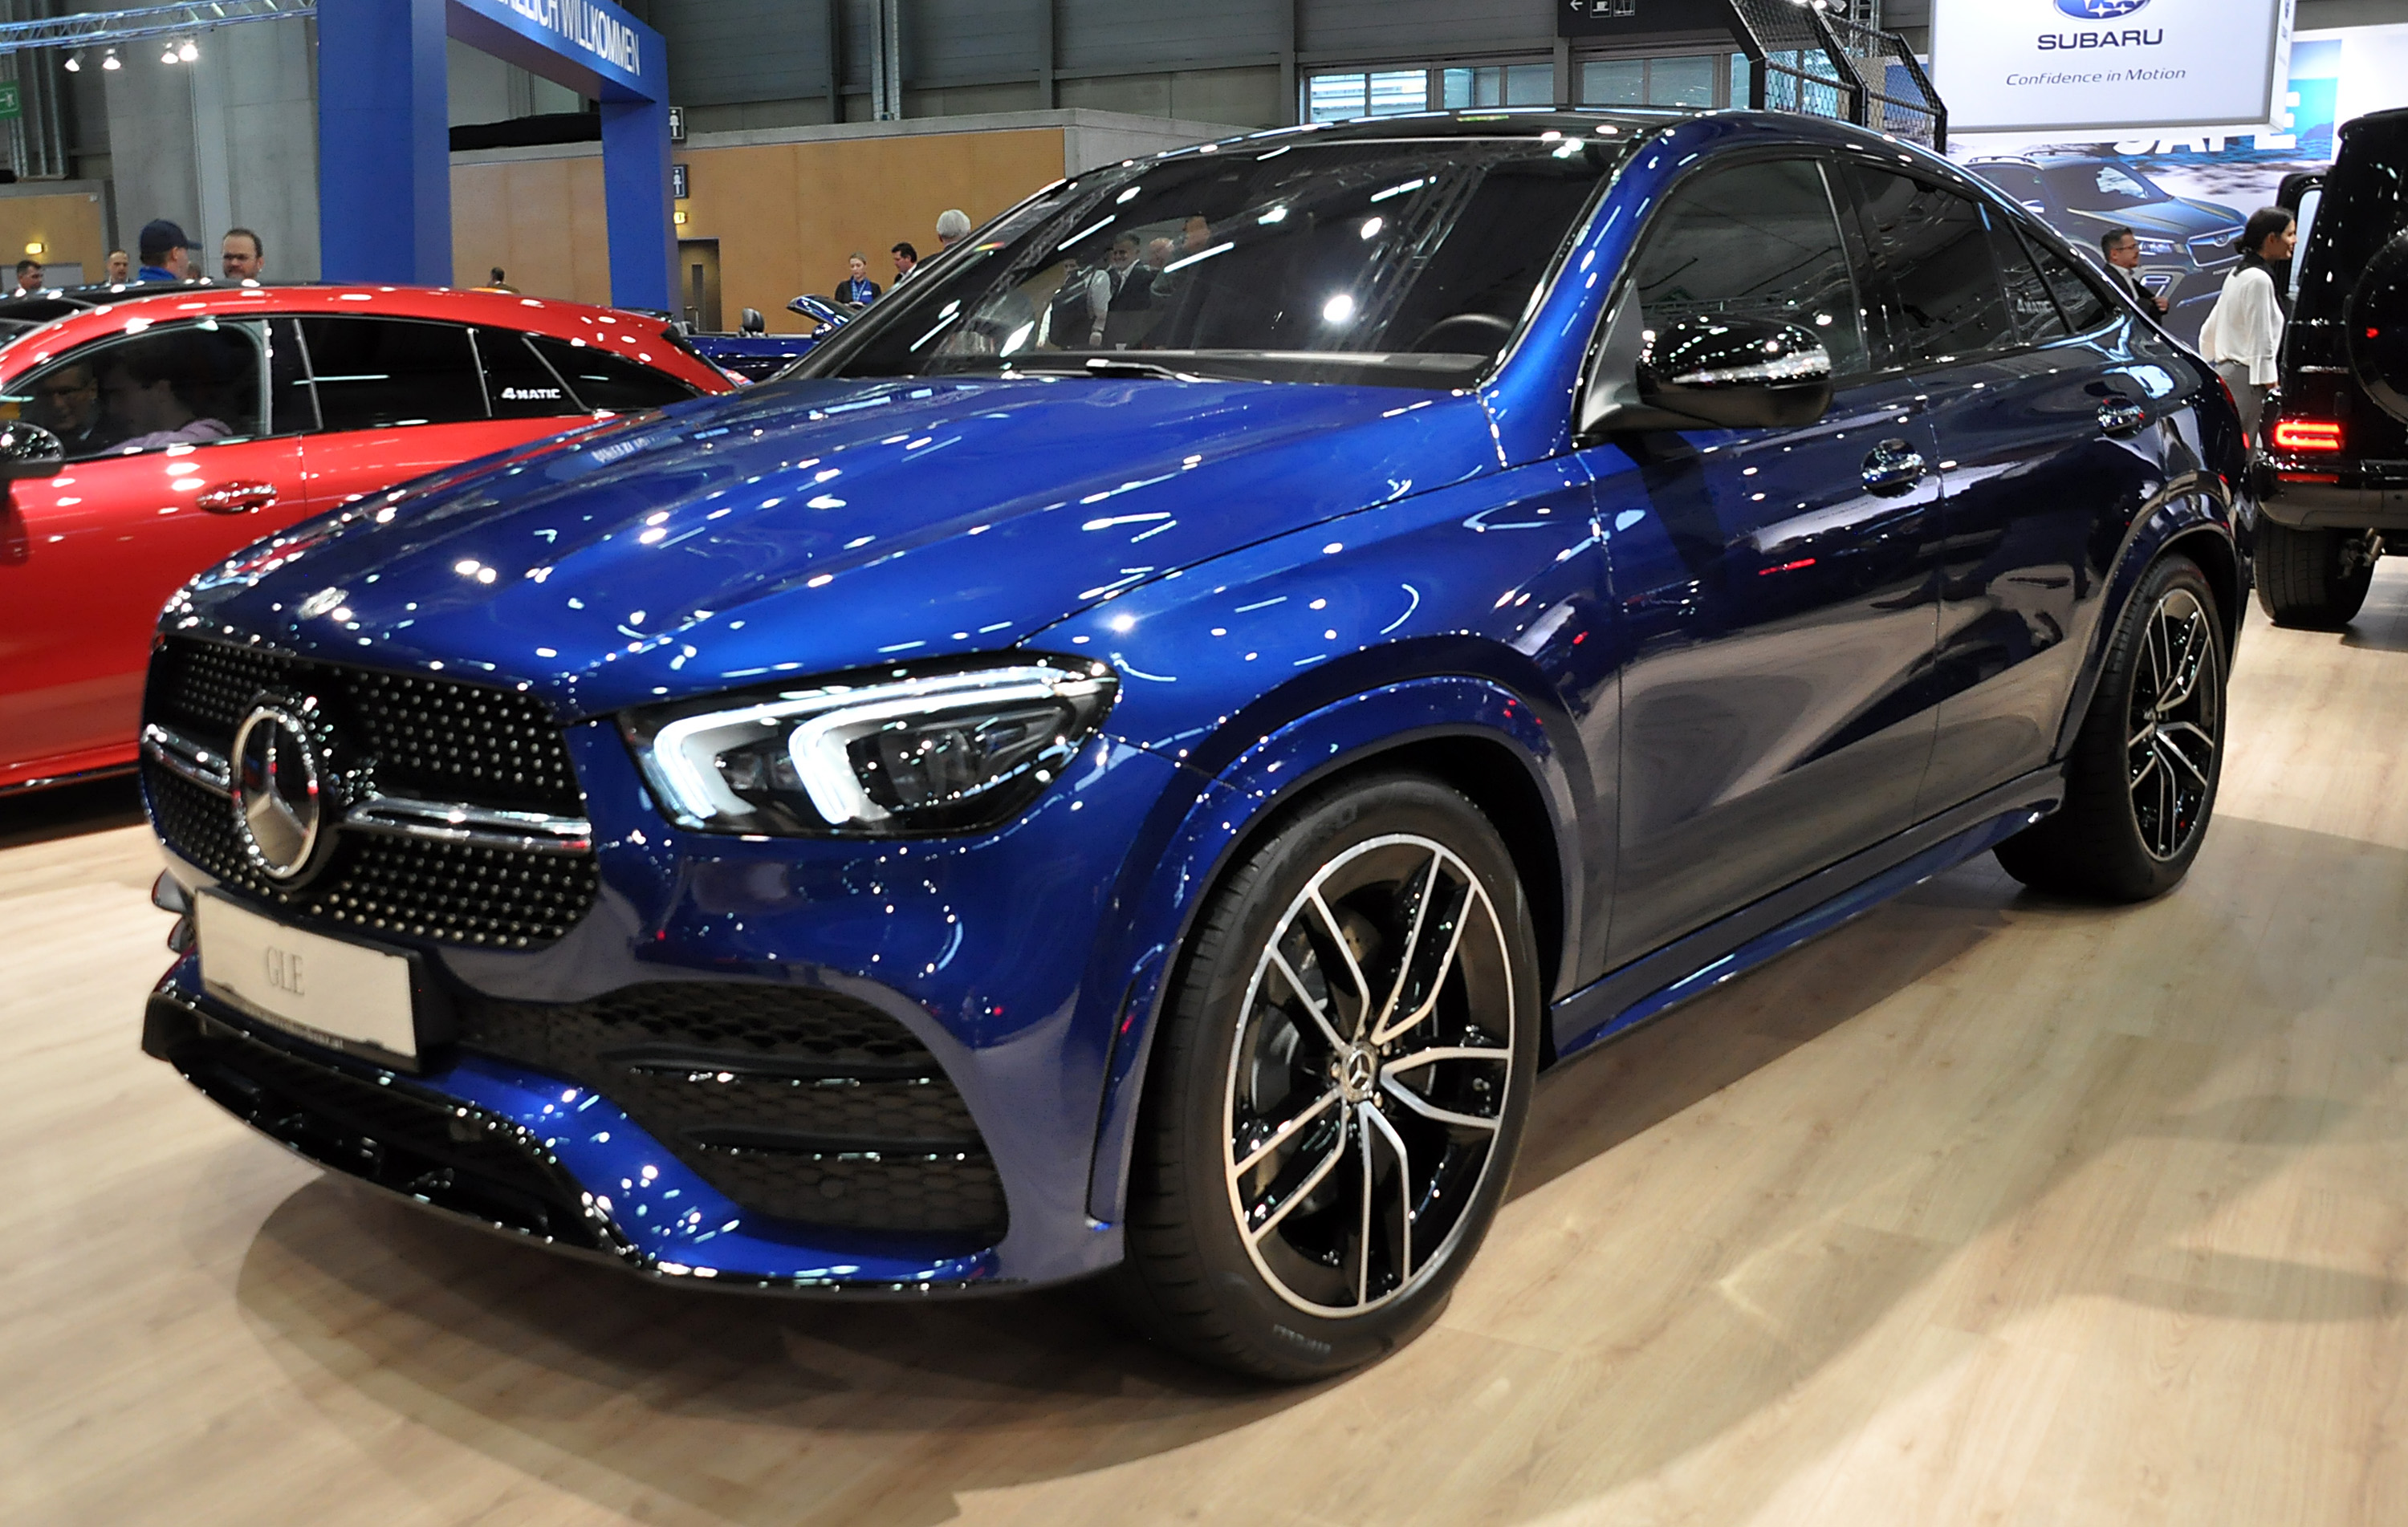 The Mercedes Benz Gle Is The Roomiest Midsize Luxury Suv On The Market